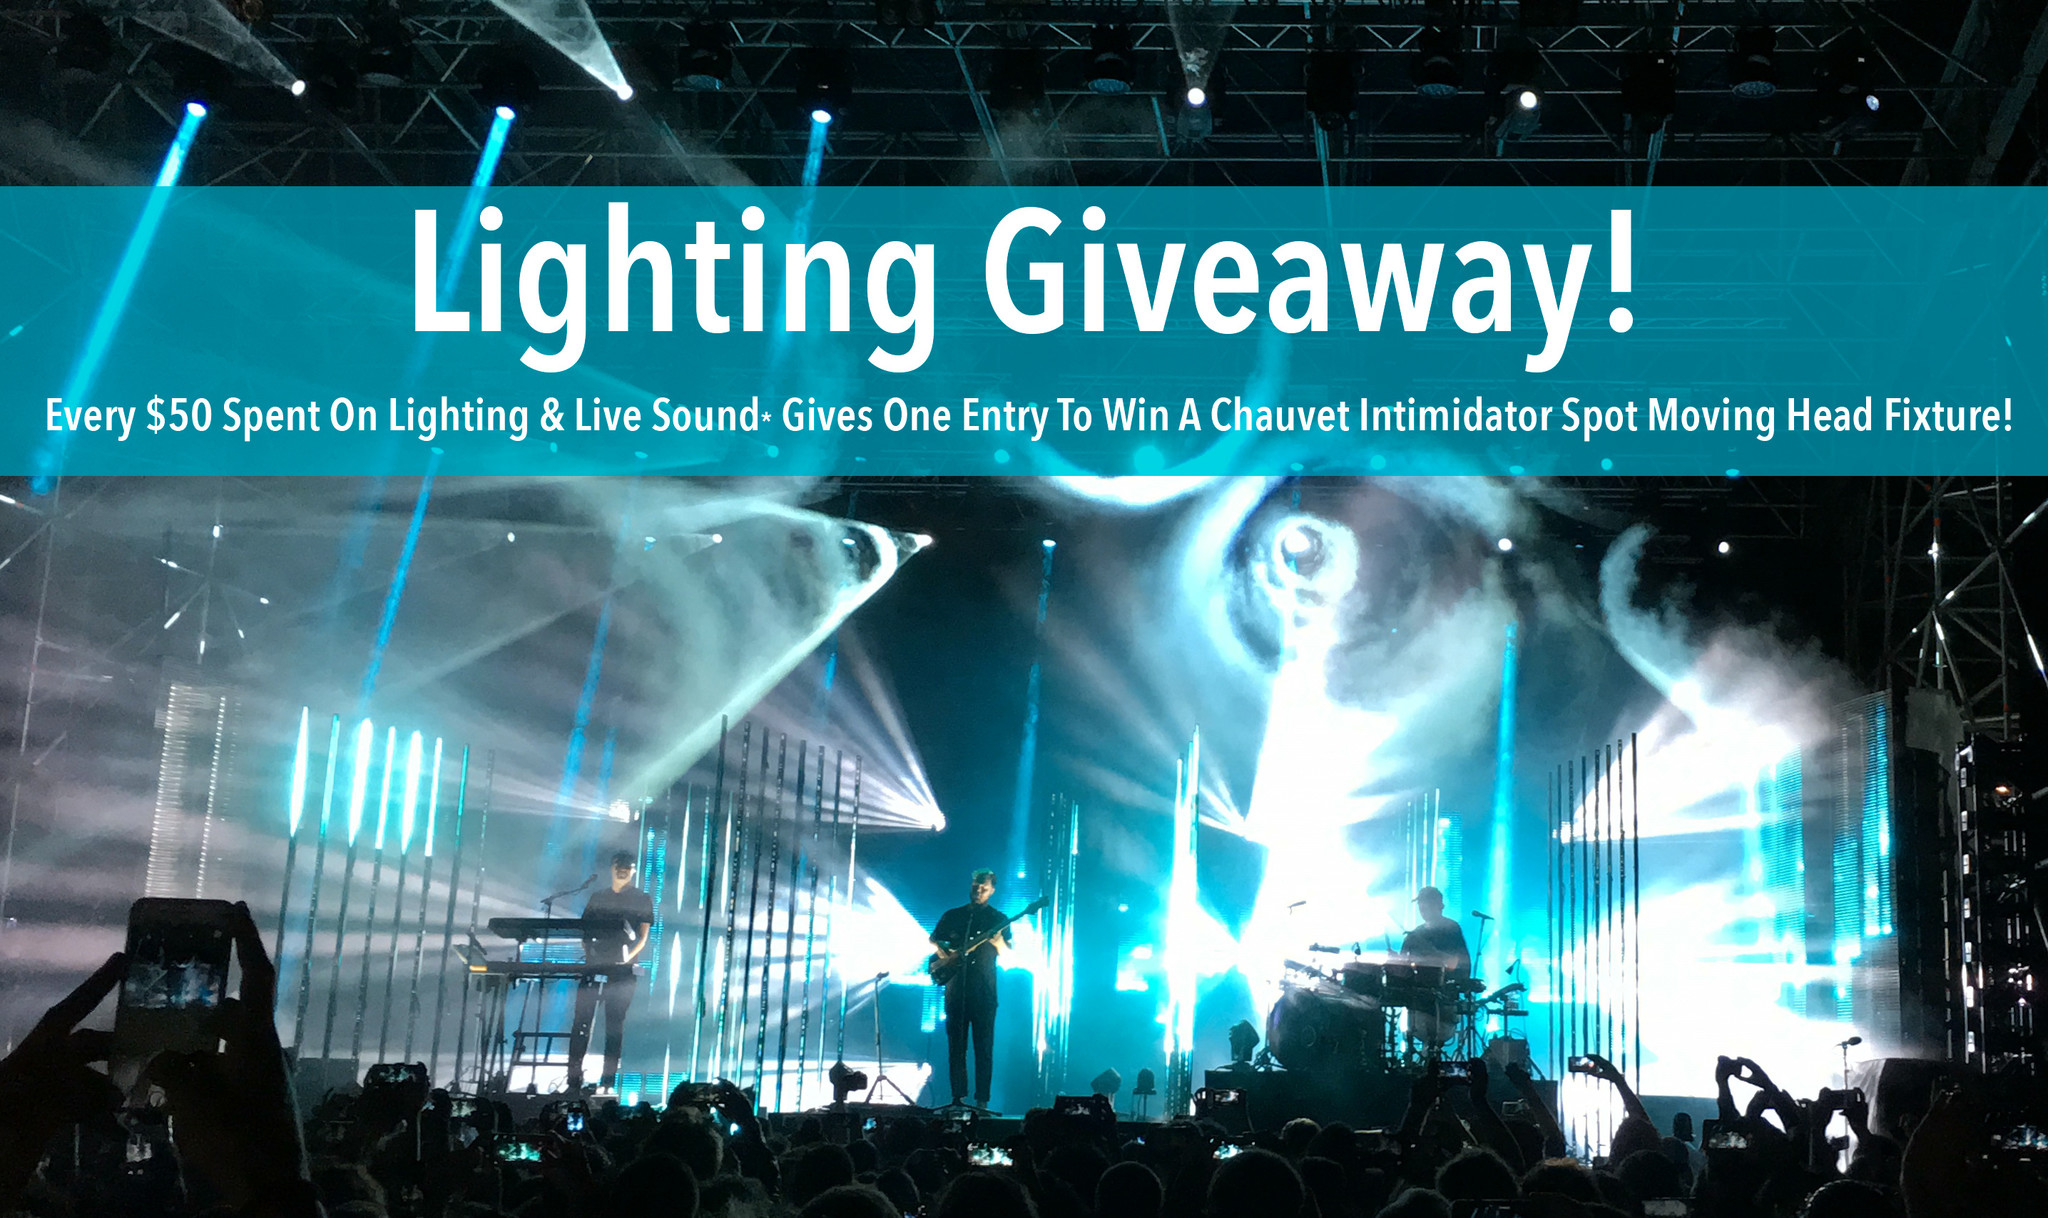 Lighting Giveaway!